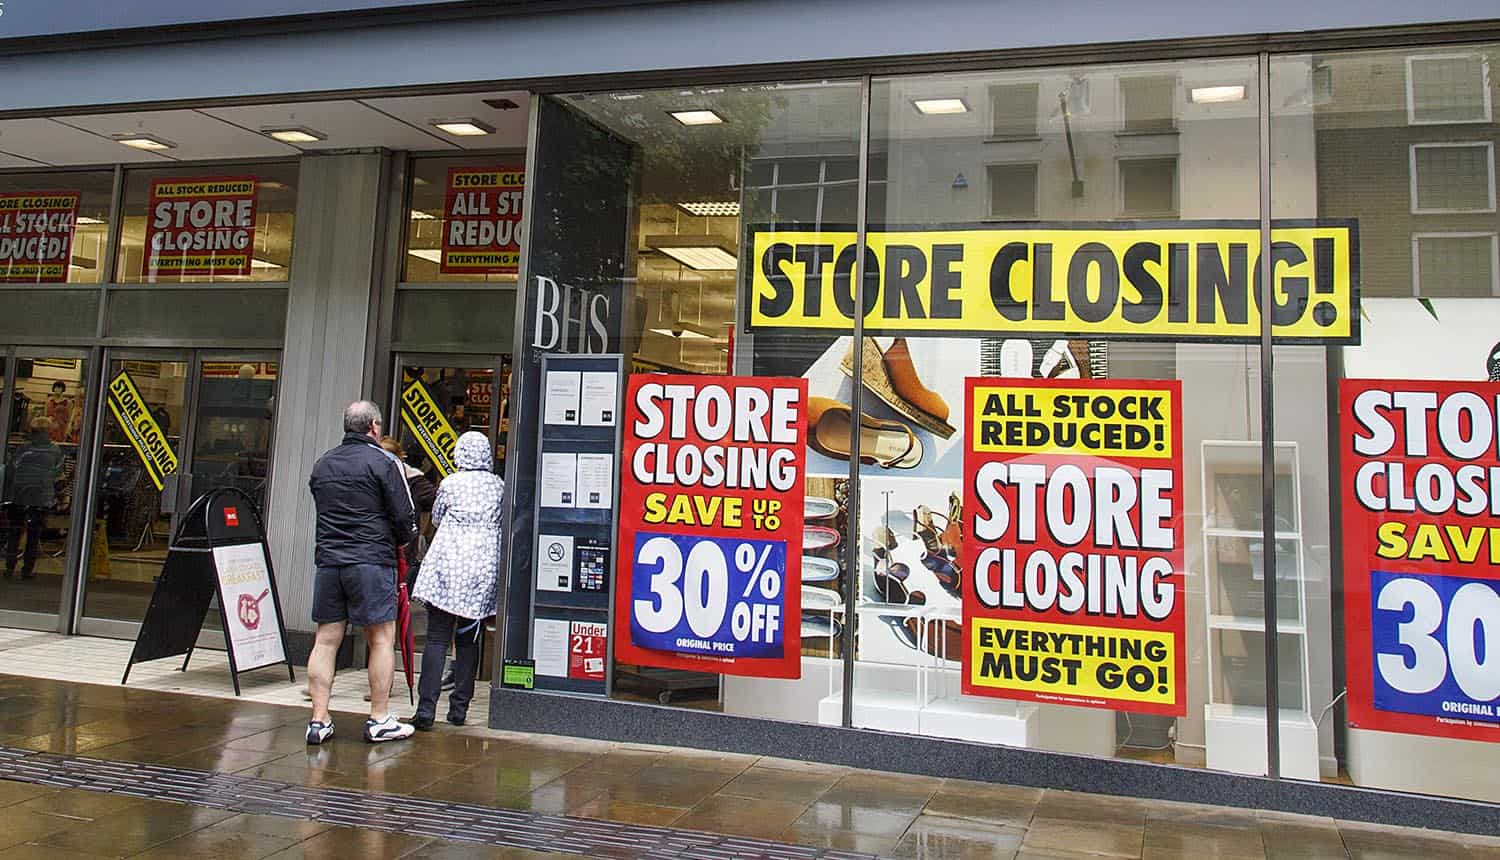 Shop front of store closing down showing majority of small businesses not taking cyber attacks seriously as shown in recent SMB study